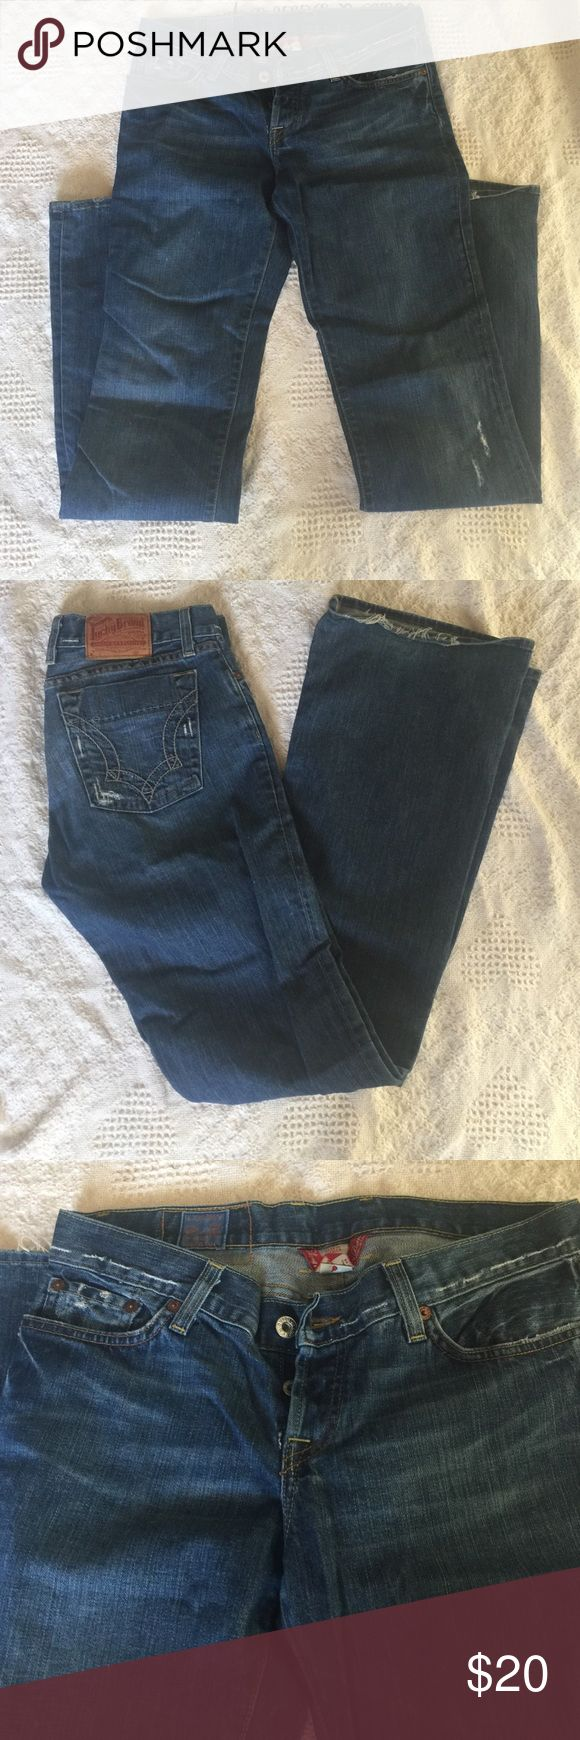 Lucky Brand Jeans Flare leg jeans in good used condition. Fraying on bottom of legs as shown. 8/29 long inseam. Lucky Brand Jeans Flare & Wide Leg